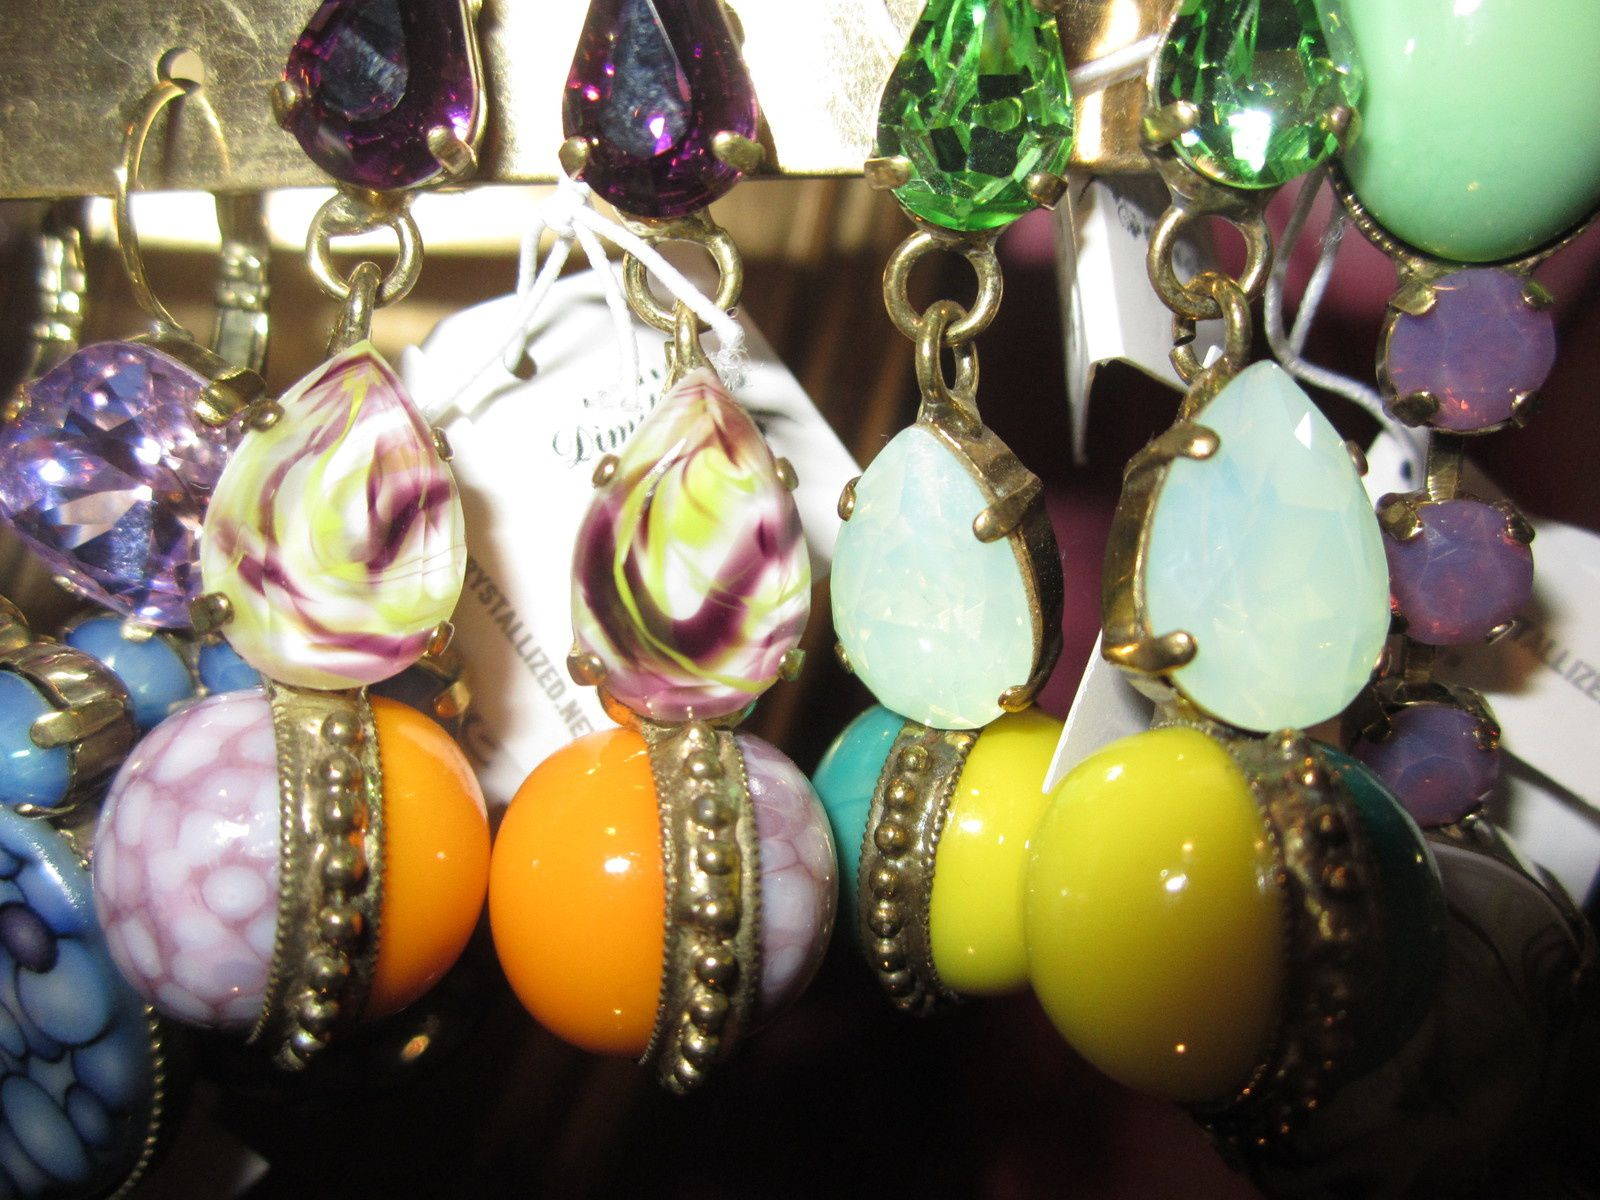 BOUCLES D' OREILLES Made in GRECE par ART WEAR DIMITRIADIS